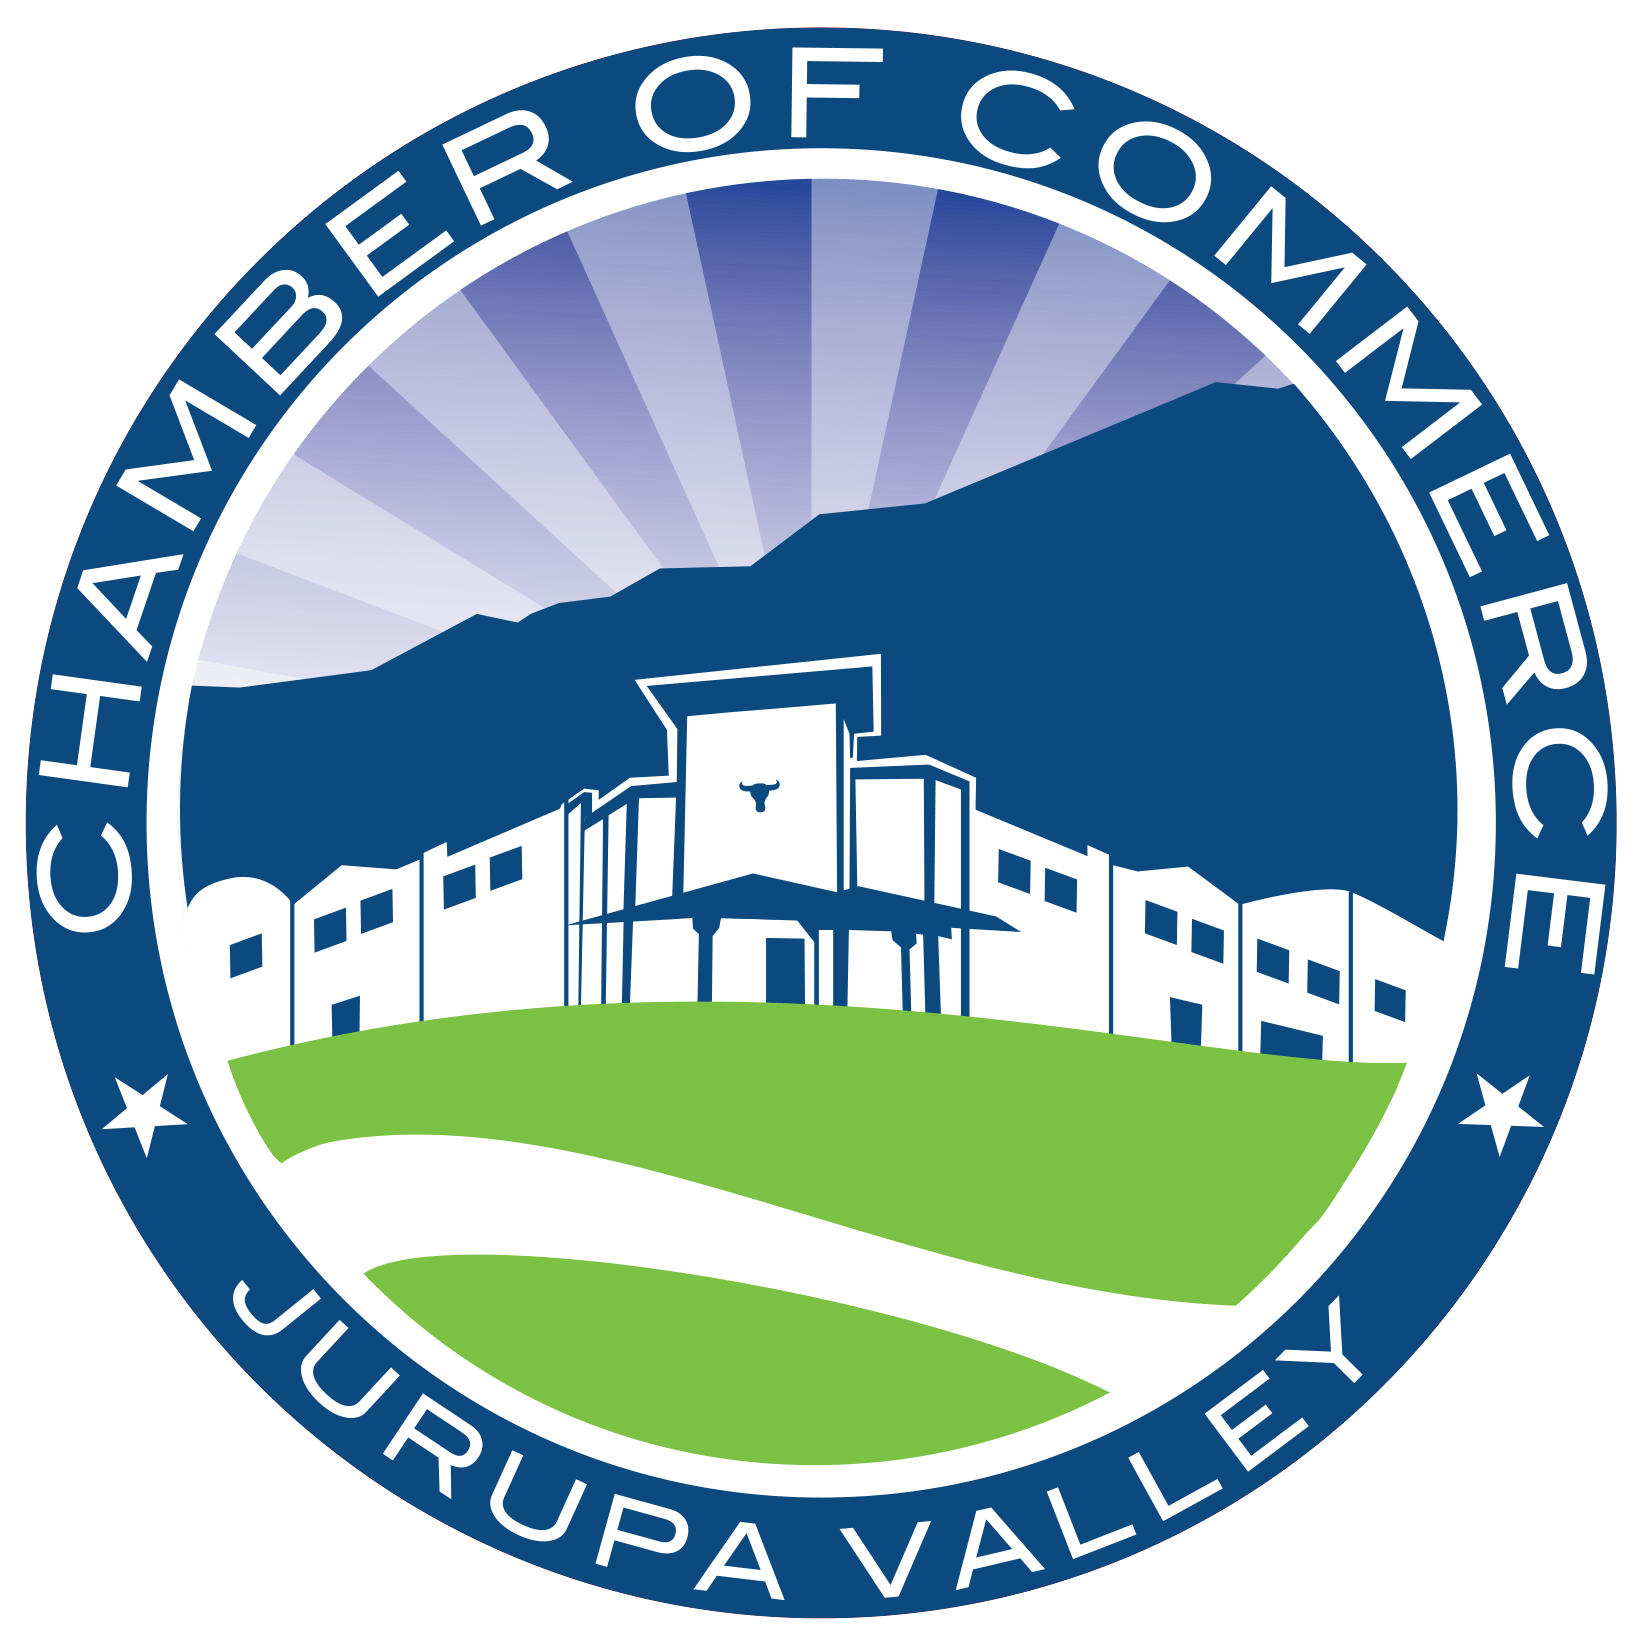 Jurupa Valley Chamber of Commerce logo